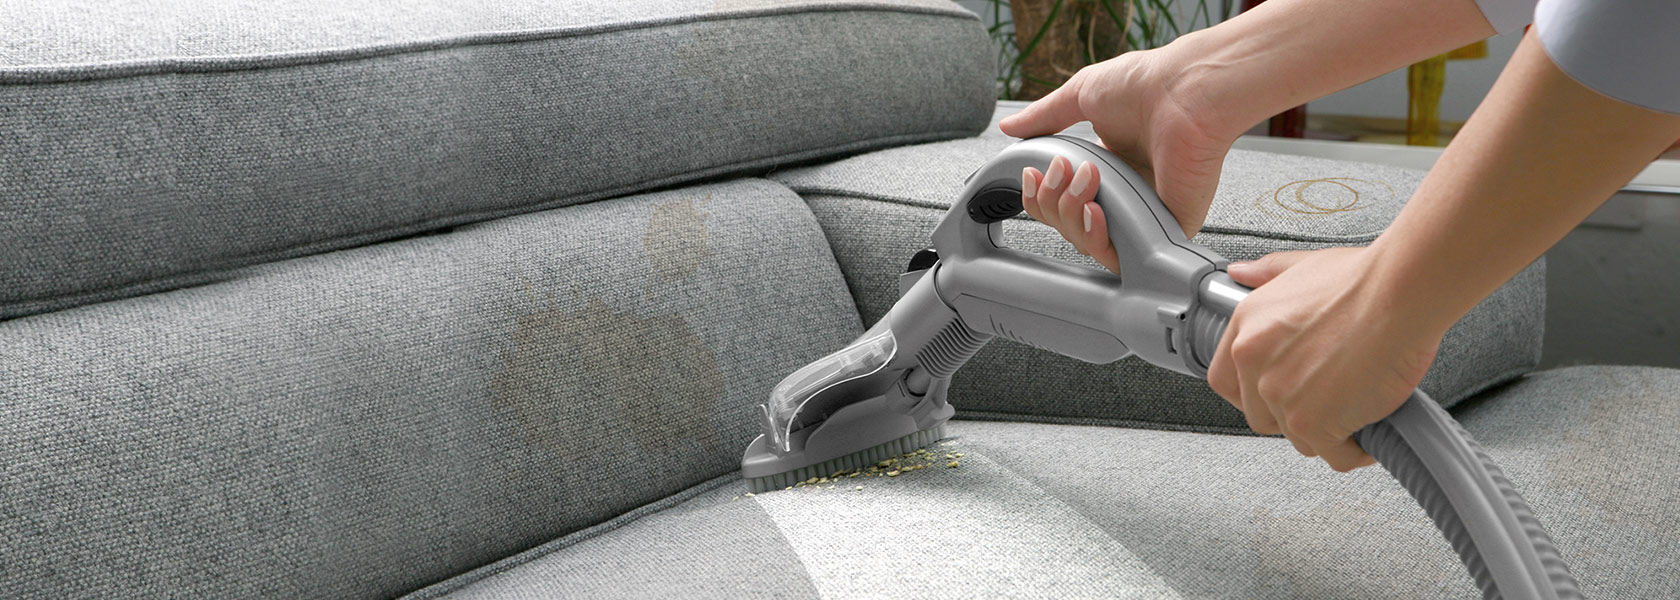 Book sofa & chair cleaning services in Dubai from best sofa & chair cleaning company - Mai...